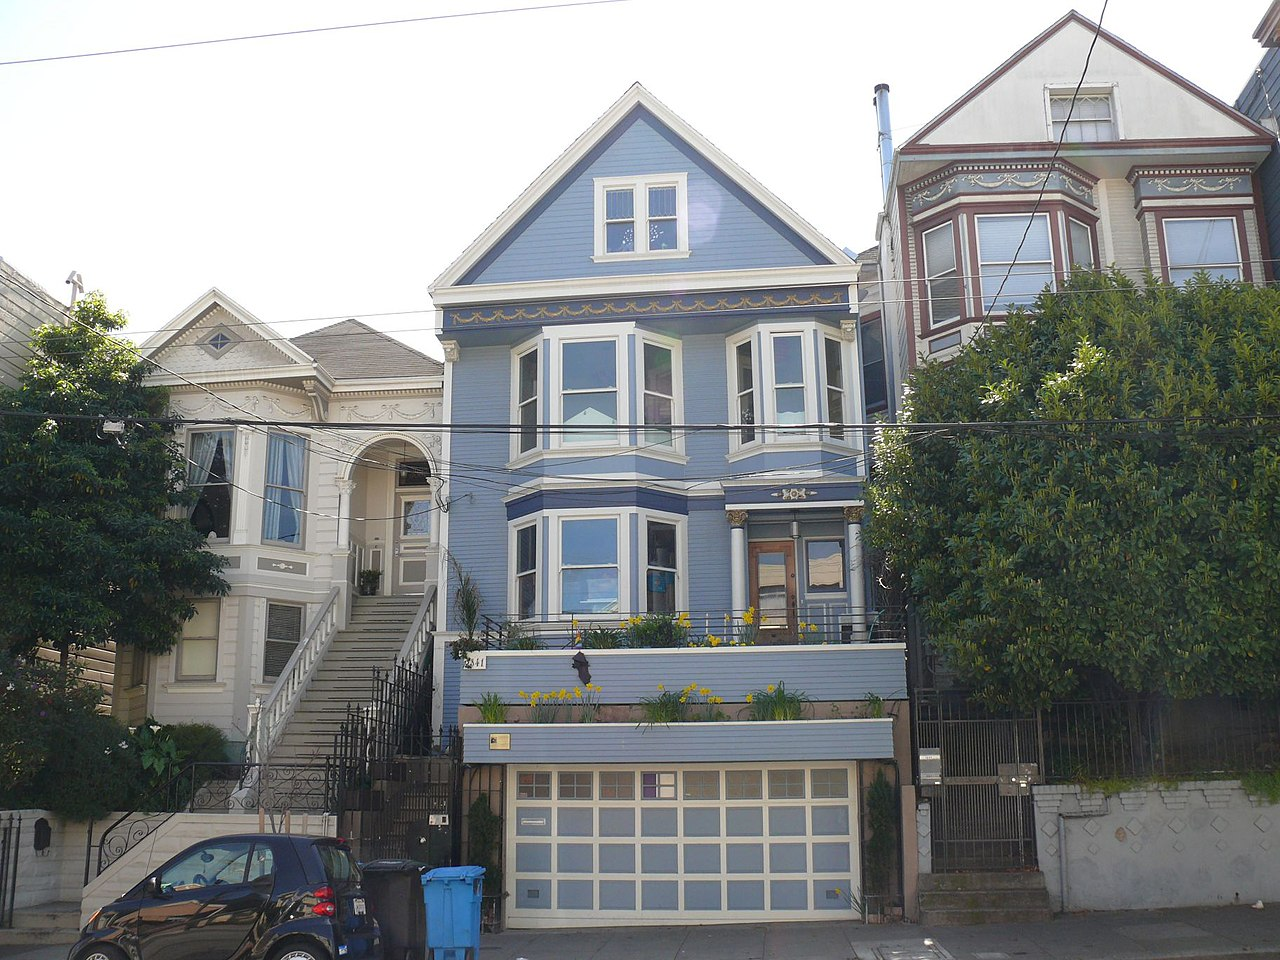 file san francisco maison bleue wikimedia commons